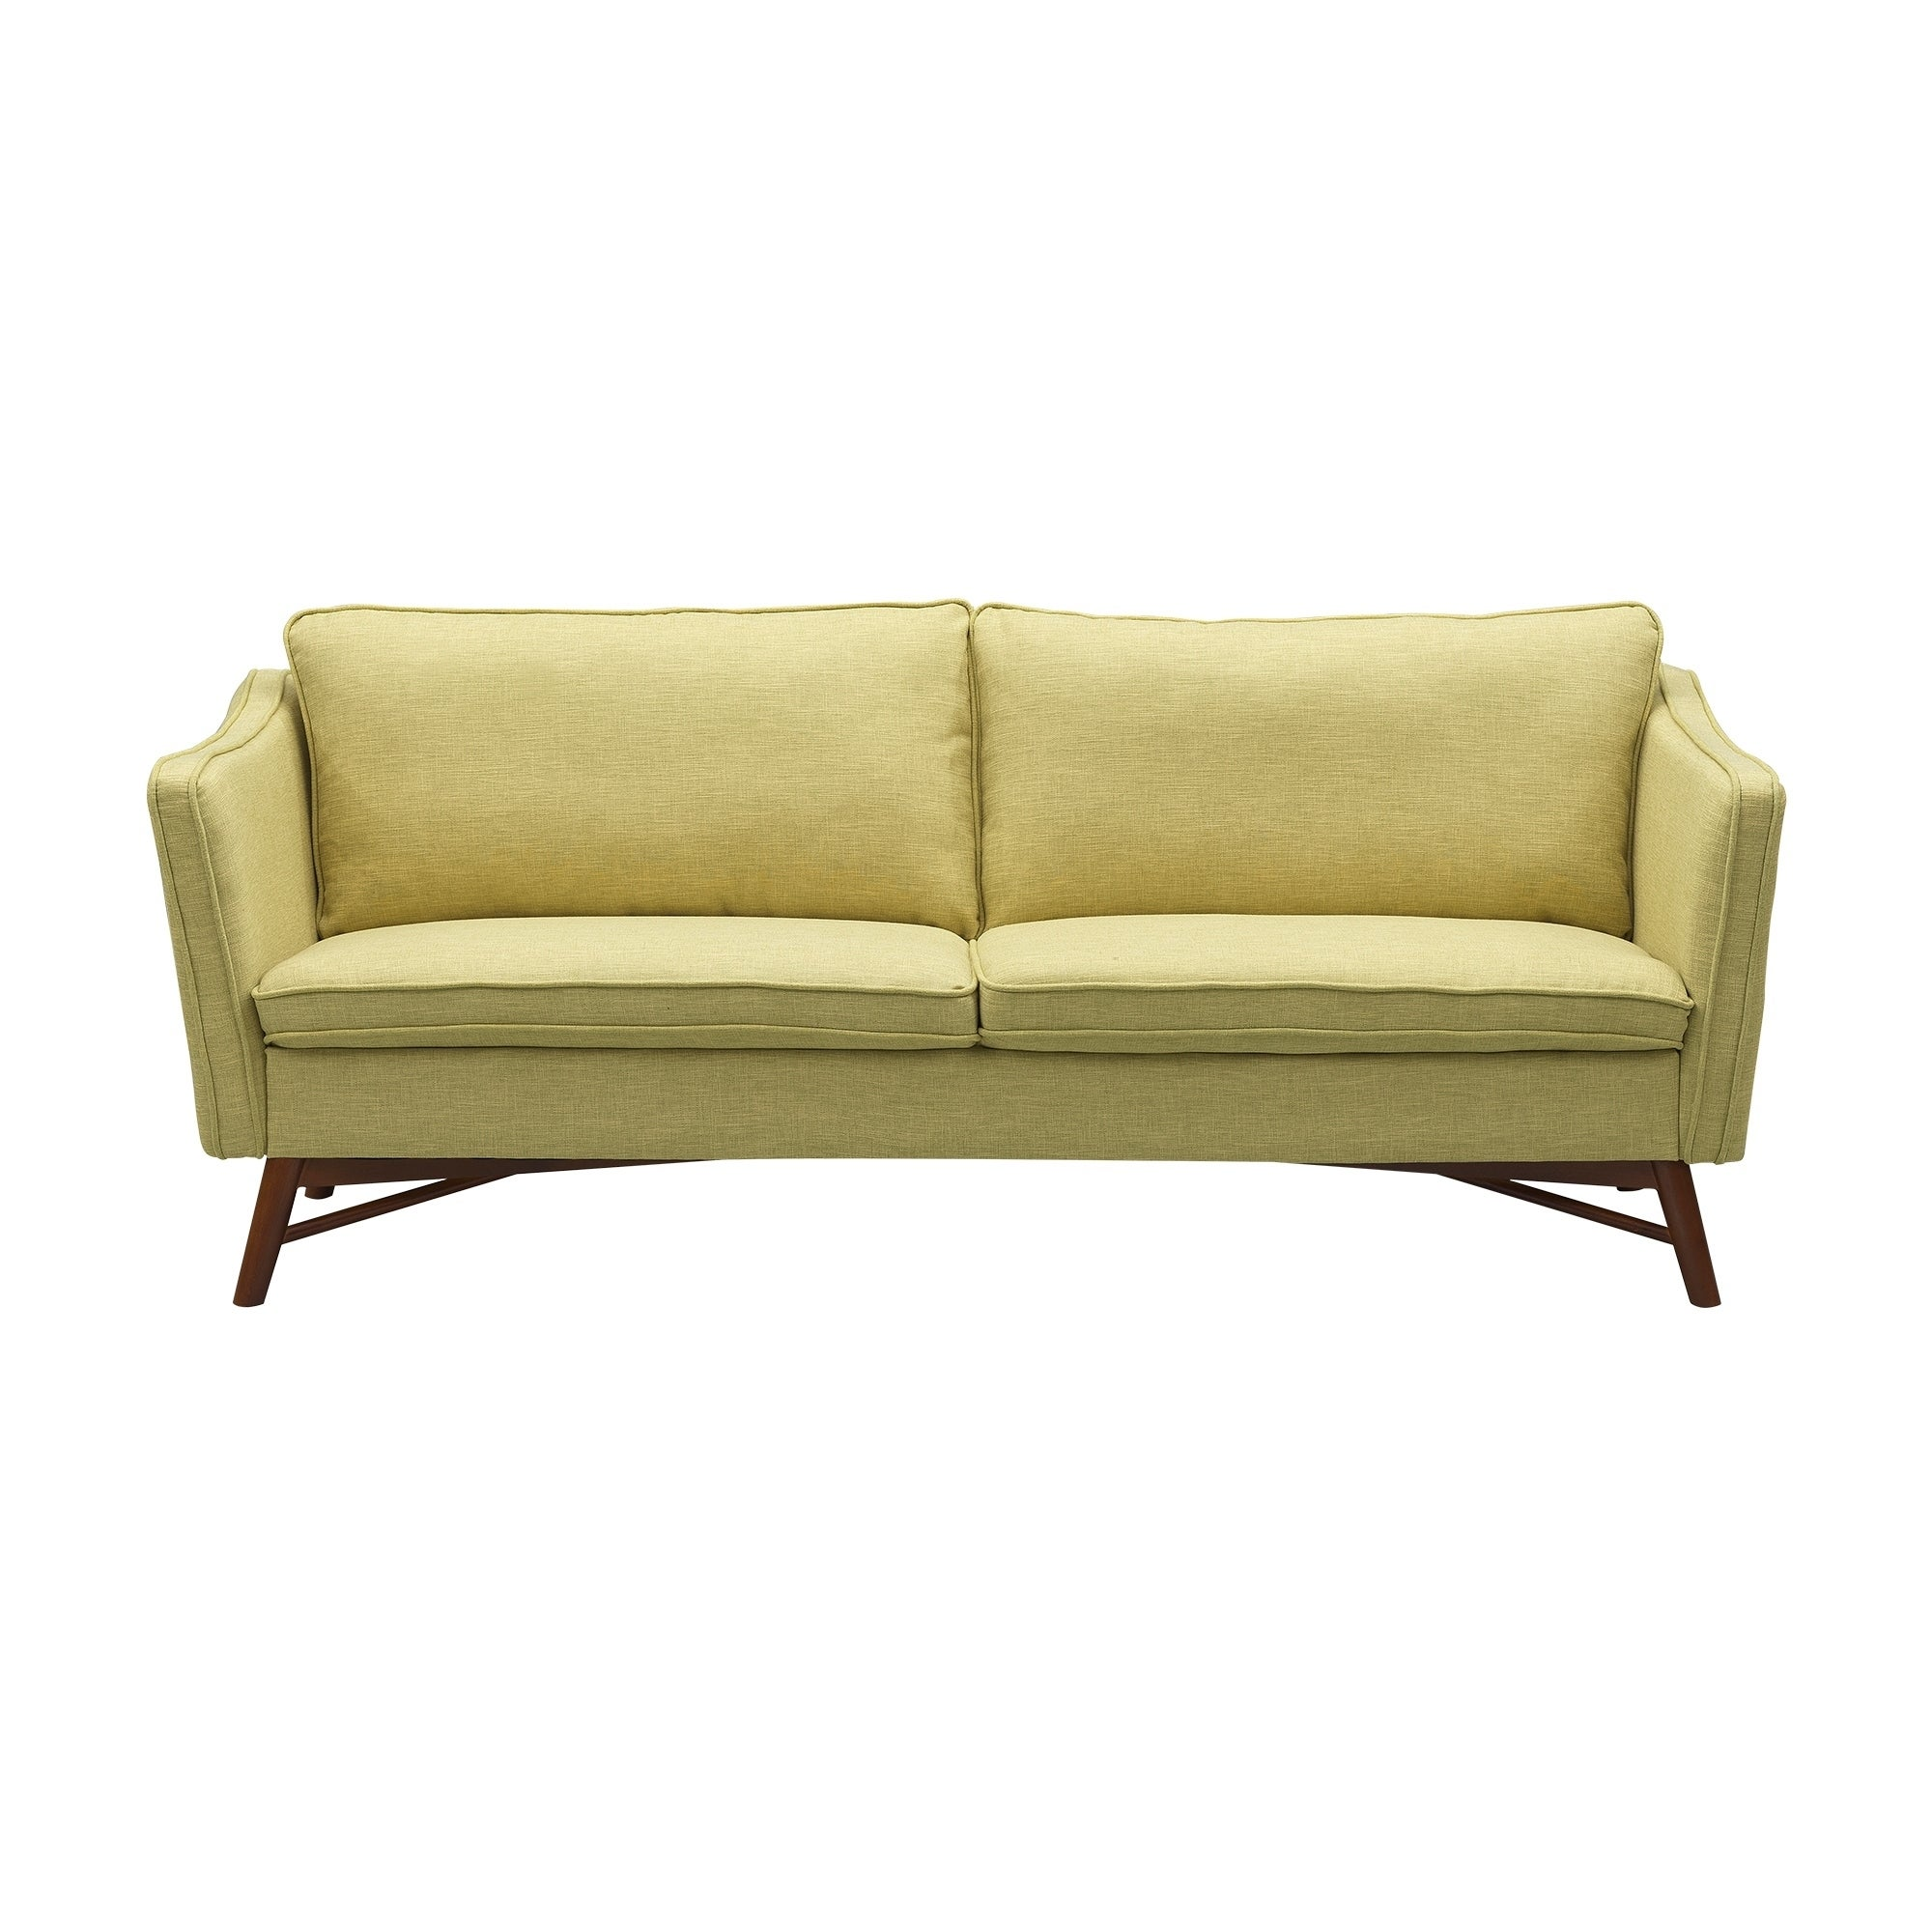 Peachy Cabriole Mid Century Sofa In Walnut Finish With Light Green Fabric Ncnpc Chair Design For Home Ncnpcorg